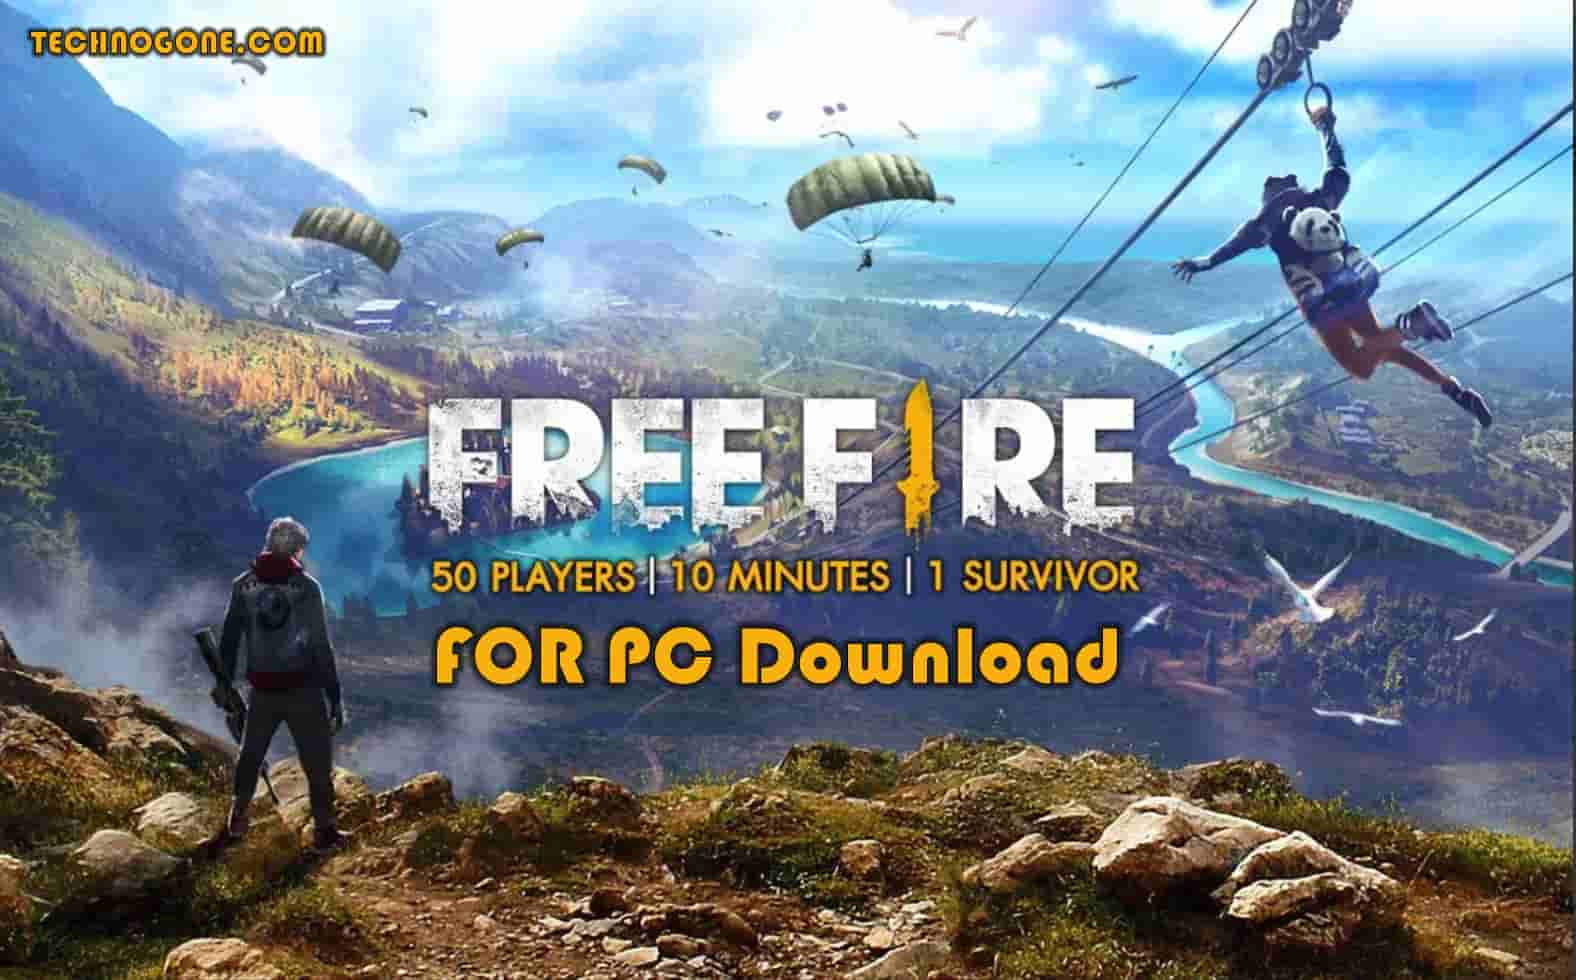 free fire game for pc free download windows 7 32 bit